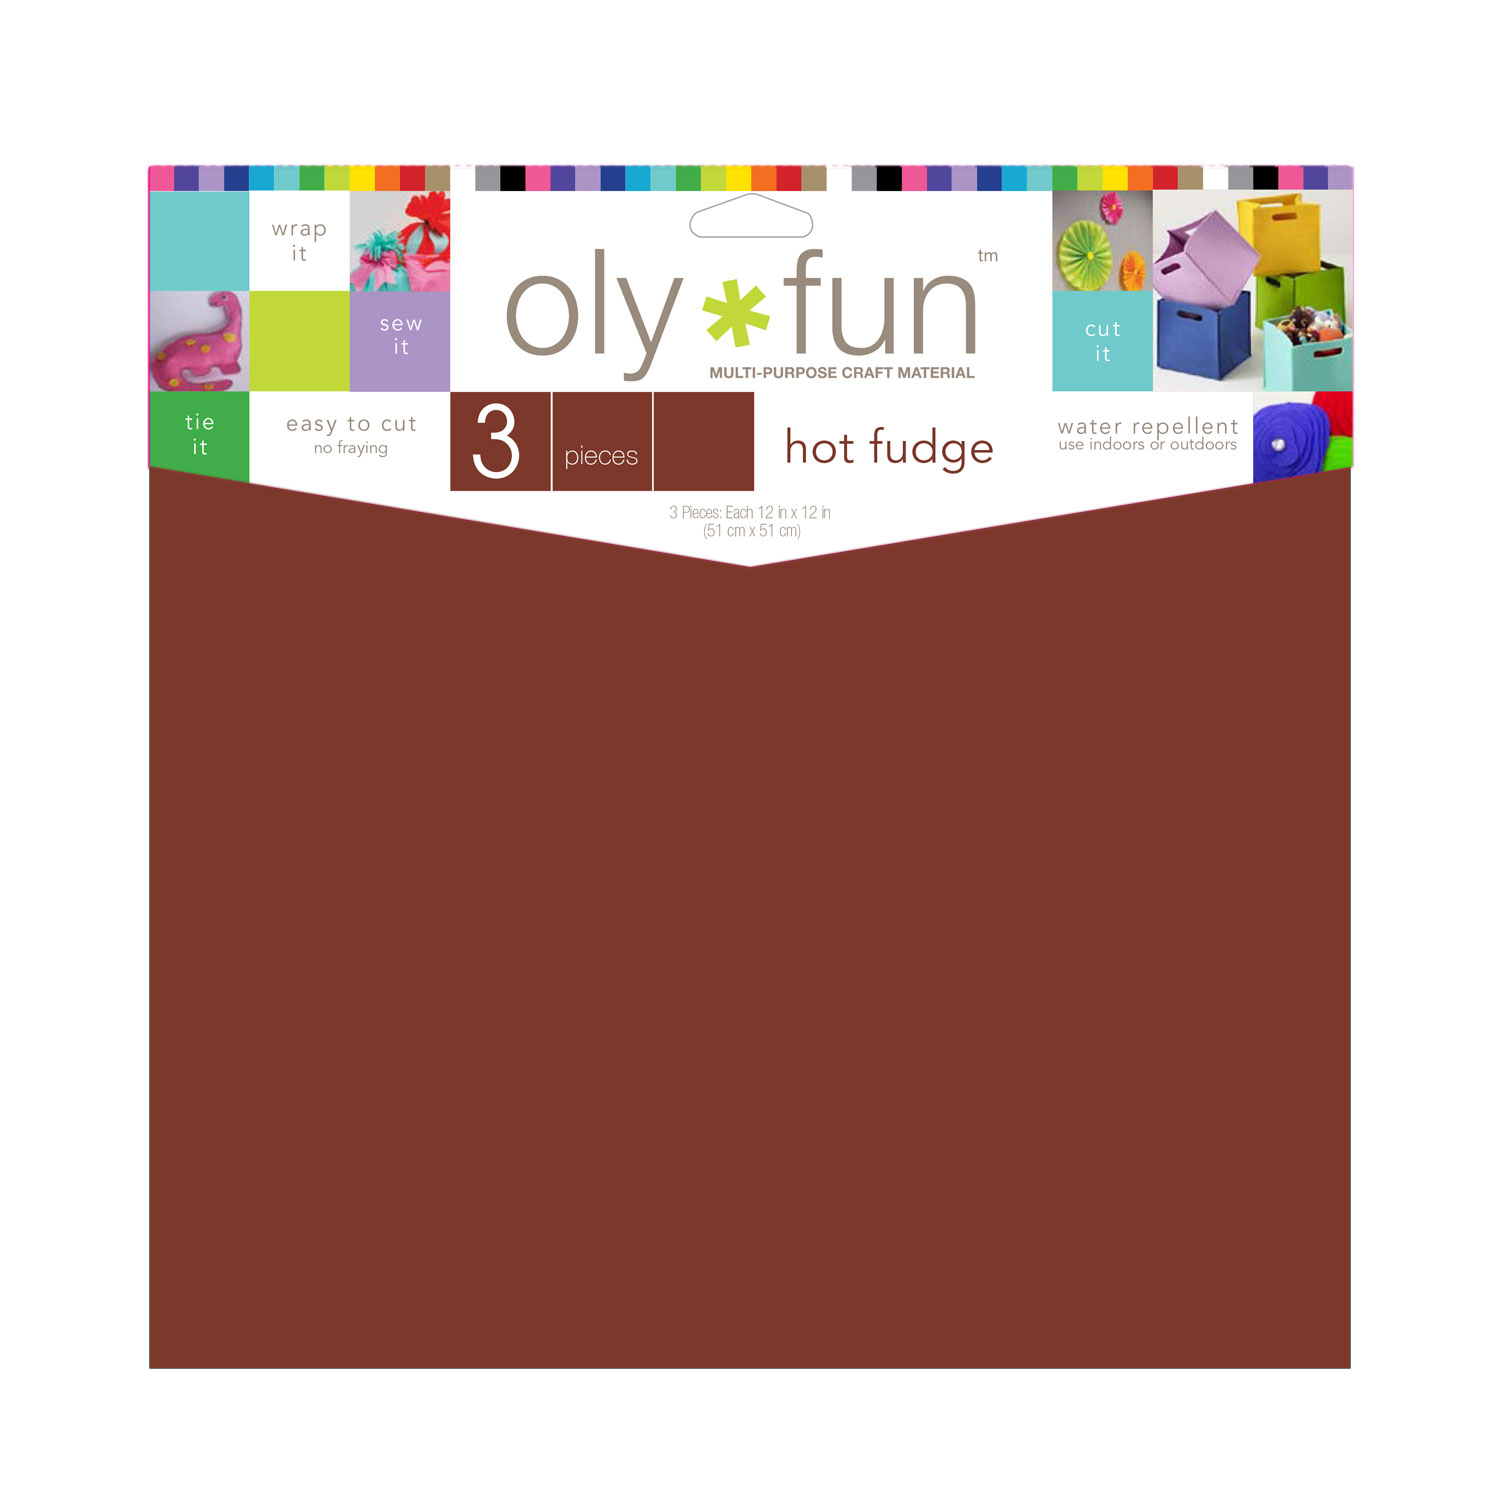 Oly-fun Hot fudge